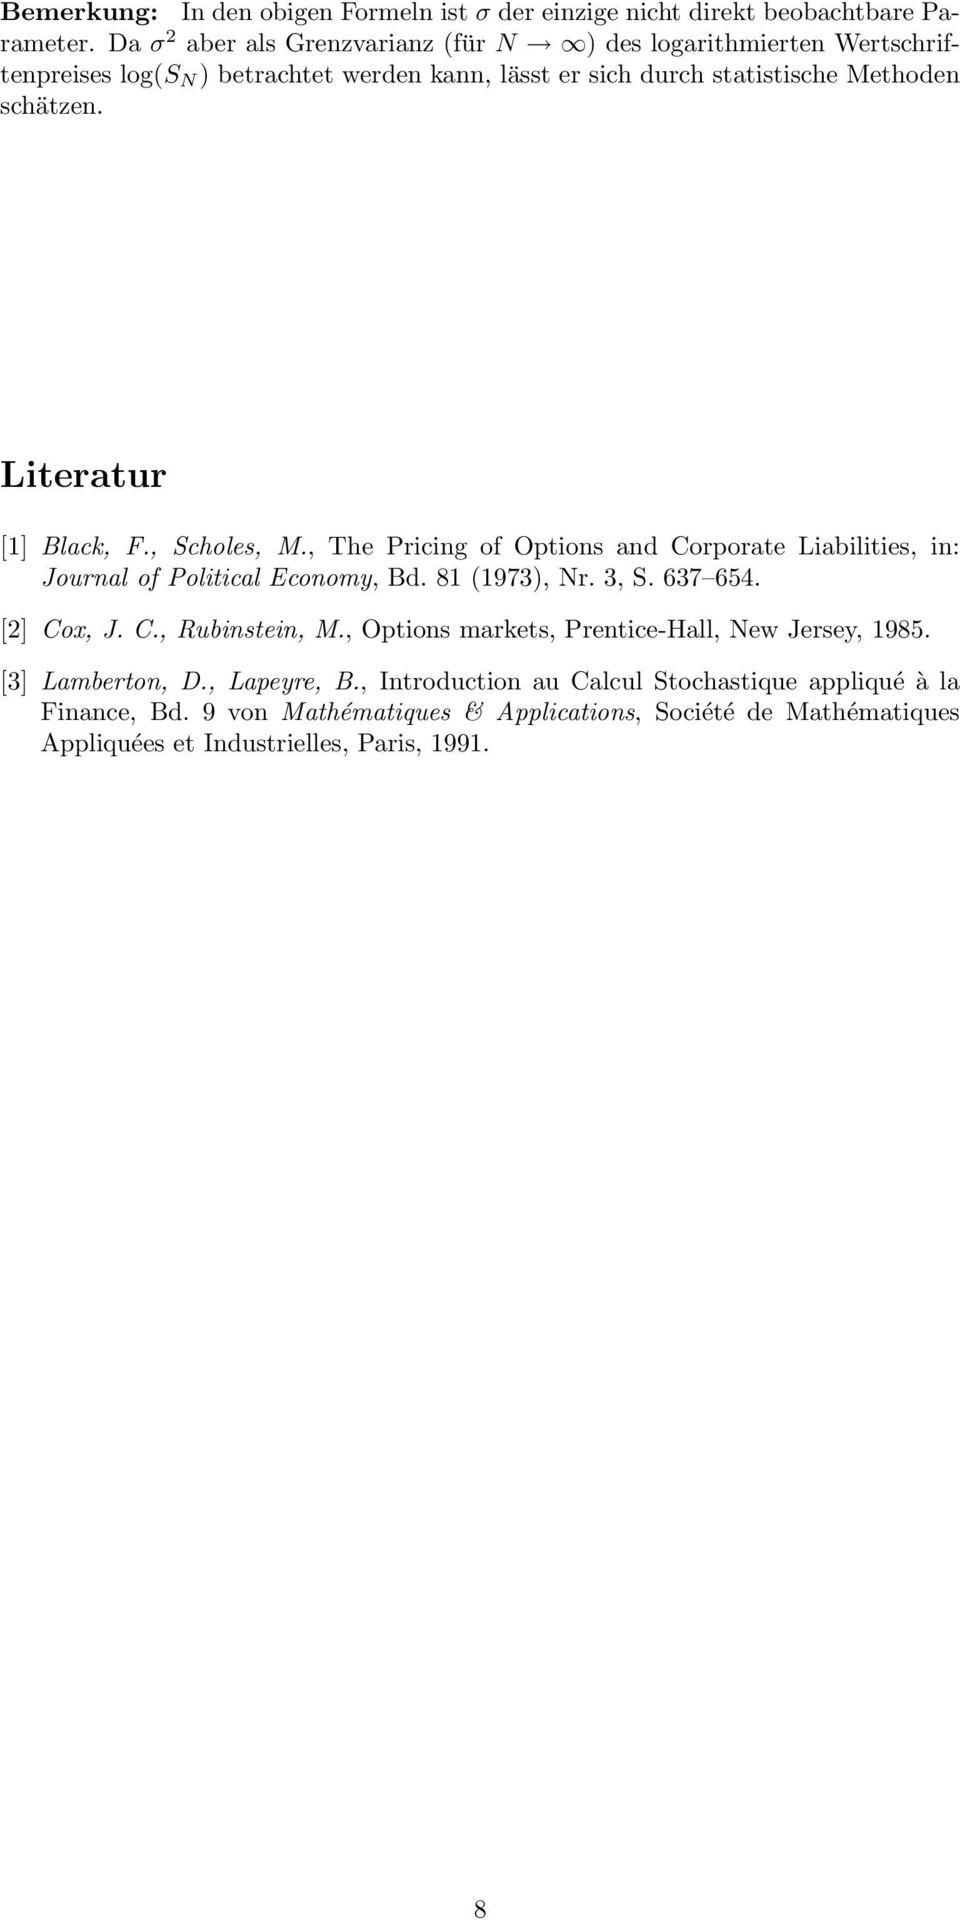 Literatur [] Black, F., Scholes, M., The Pricing of Options and Corporate Liabilities, in: Journal of Political Economy, Bd. 8 973, r. 3, S. 637 654. [] Cox, J. C., Rubinstein, M.